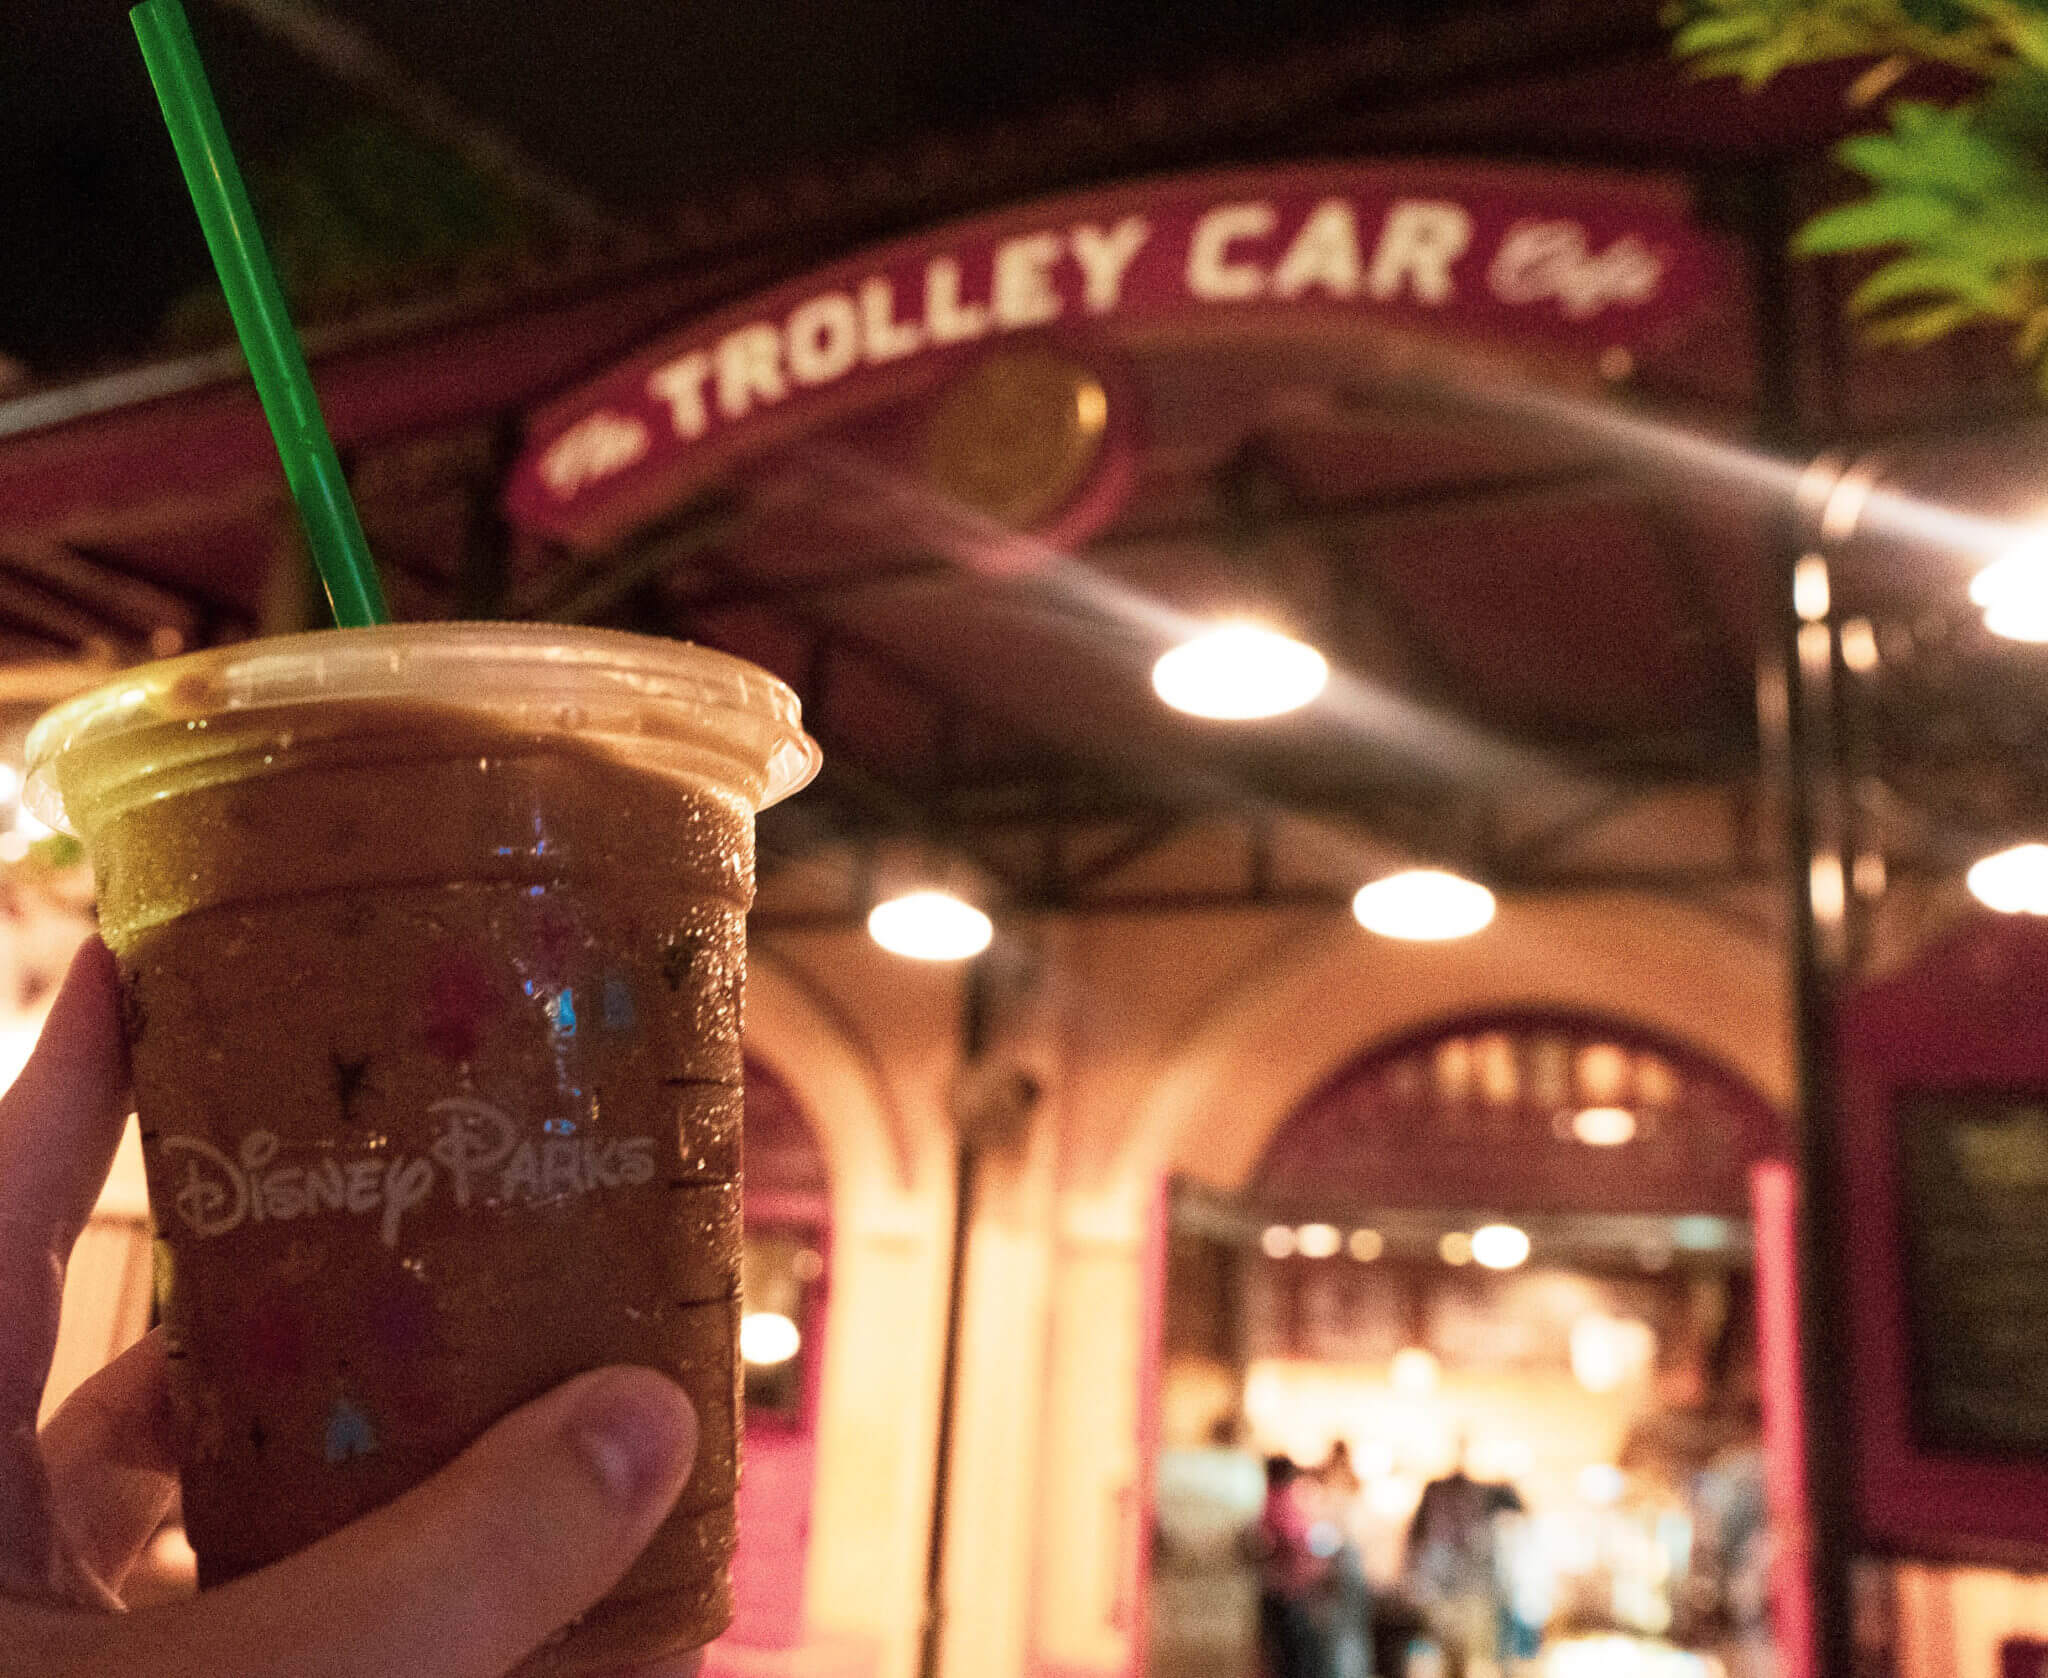 Iced latte coffee from Trolley Car Cafe in Hollywood Studios at Disney World